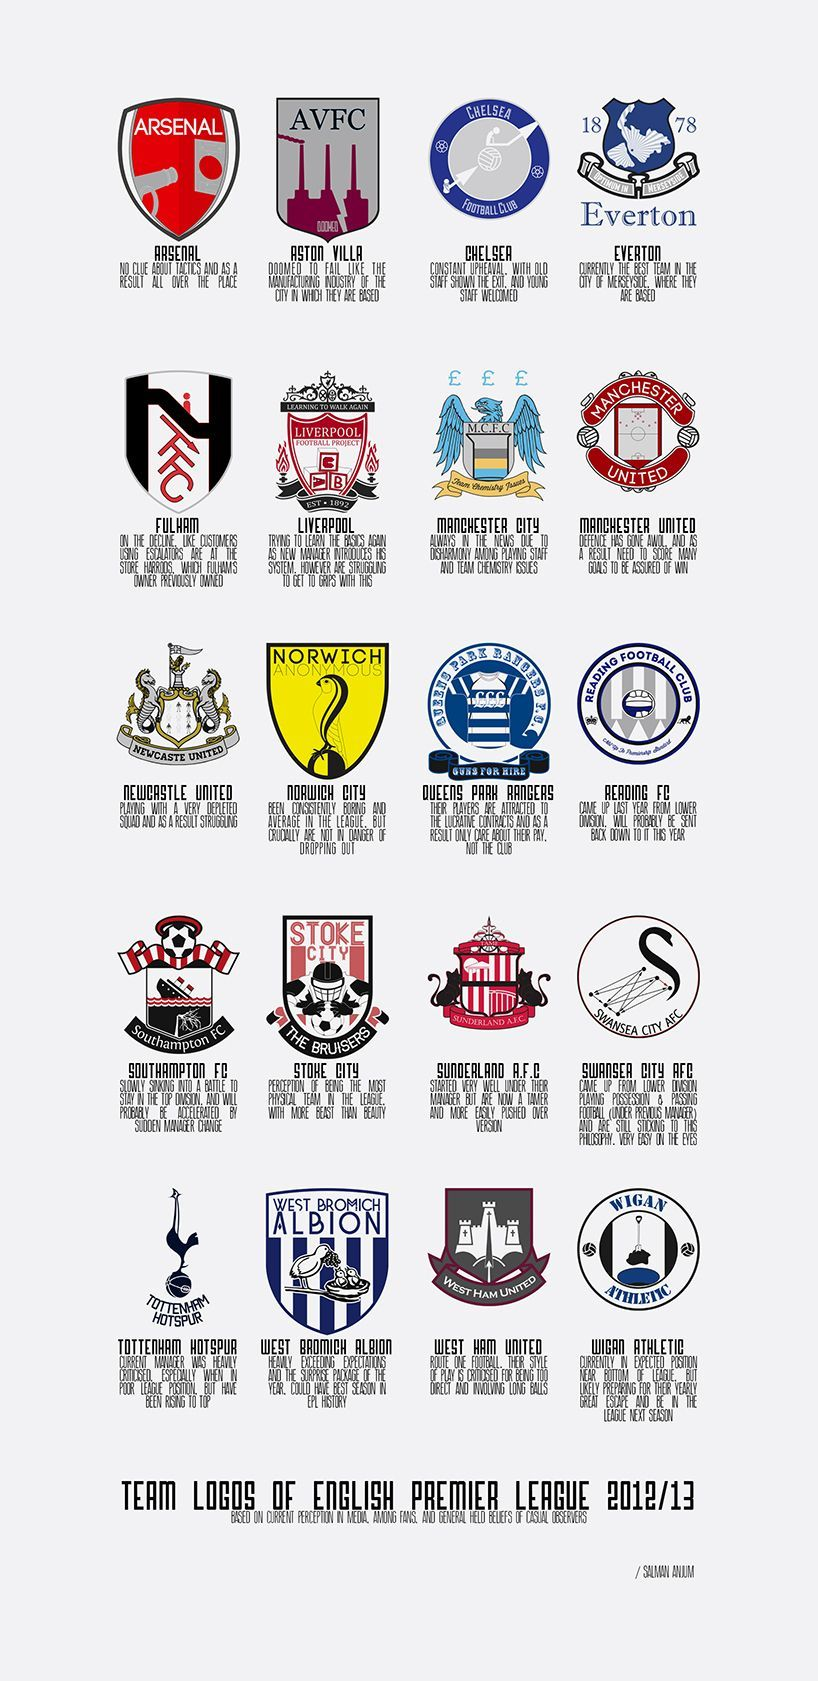 the logos of the 2012/13 english premier league teams have